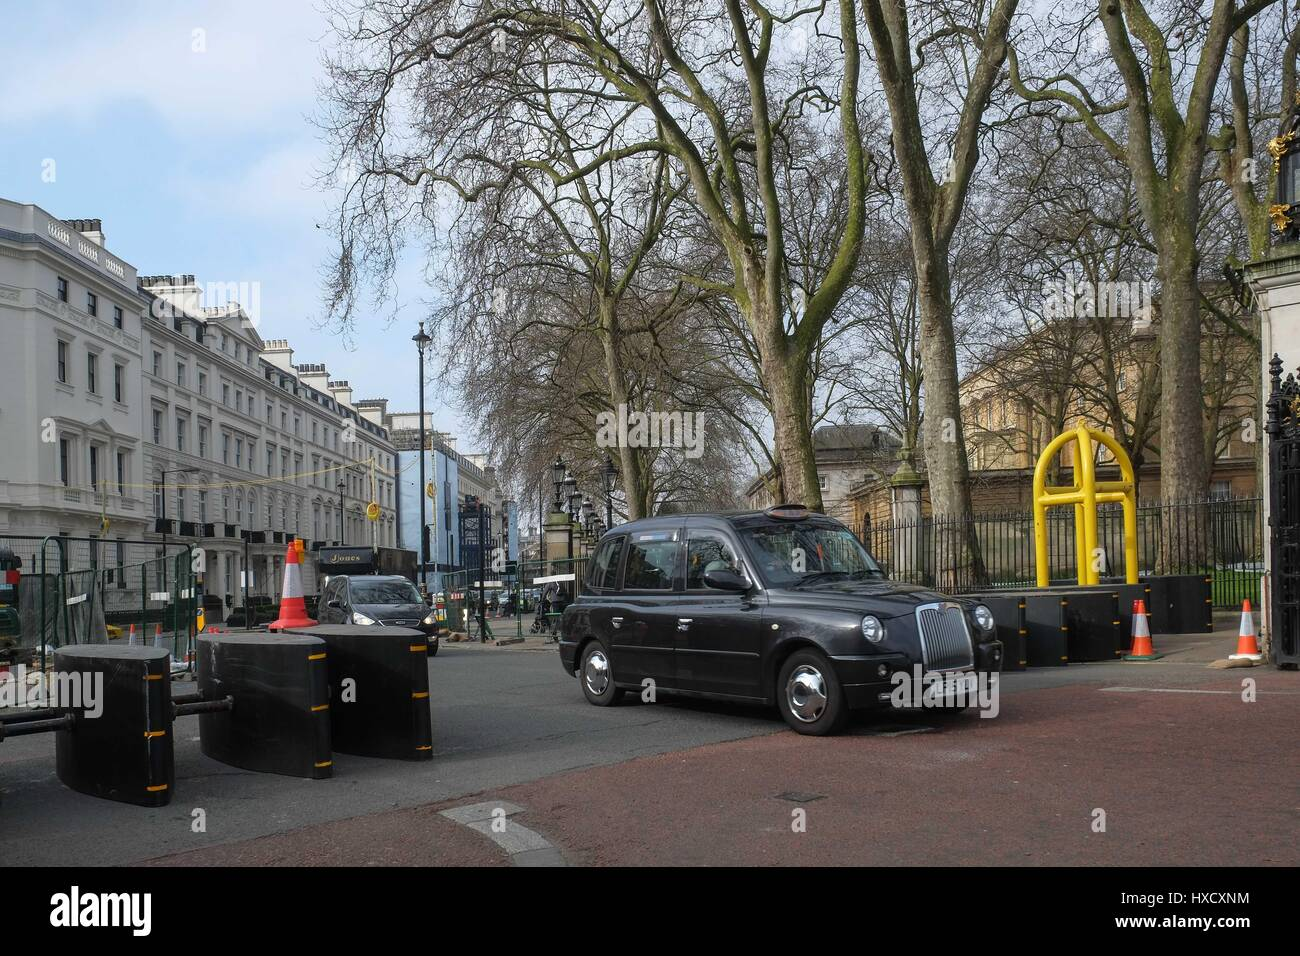 London Uk 27th March 2017 The Met Police Have Yellow Bollards